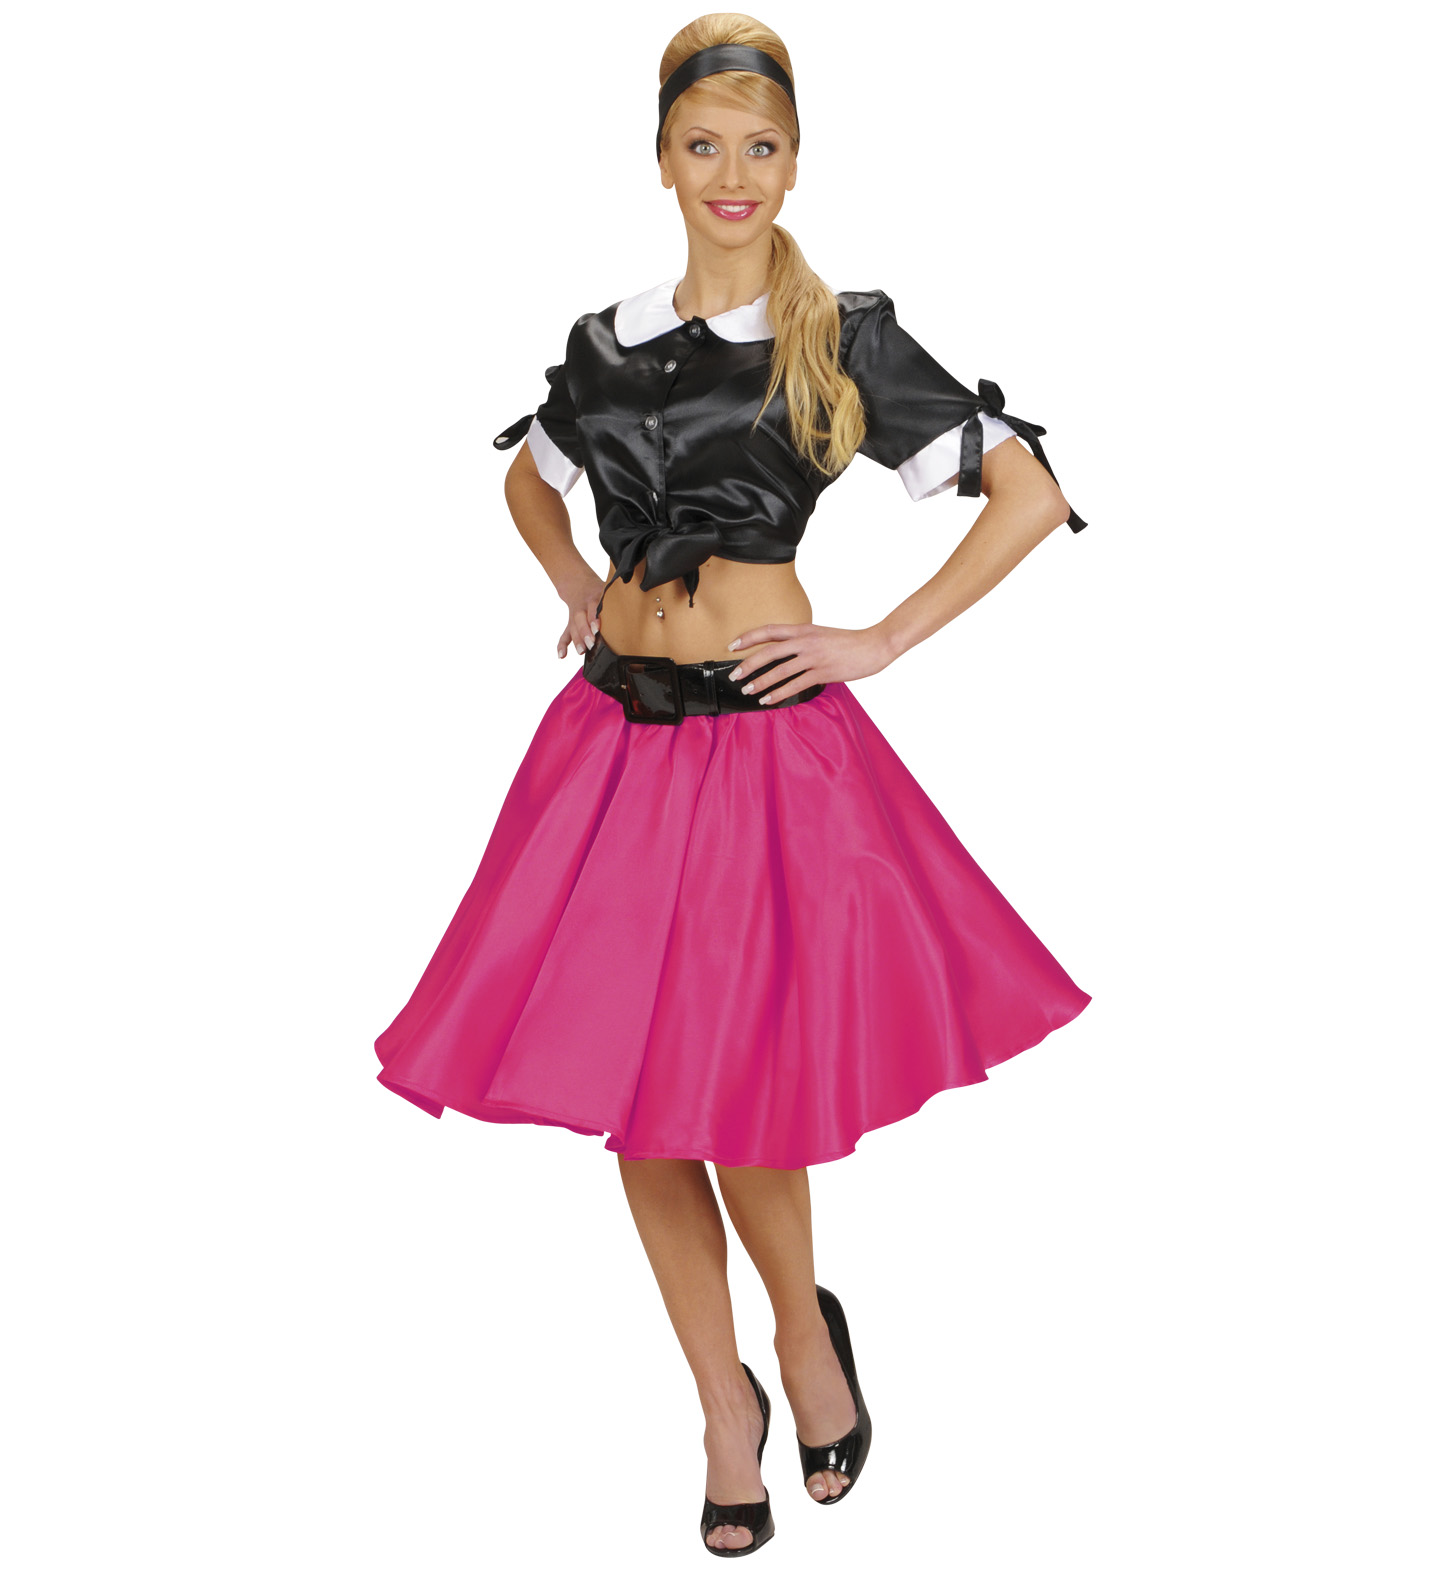 Pink Satin Rock n Roll Skirt Fancy Dress Costumes & Party Supplies ...